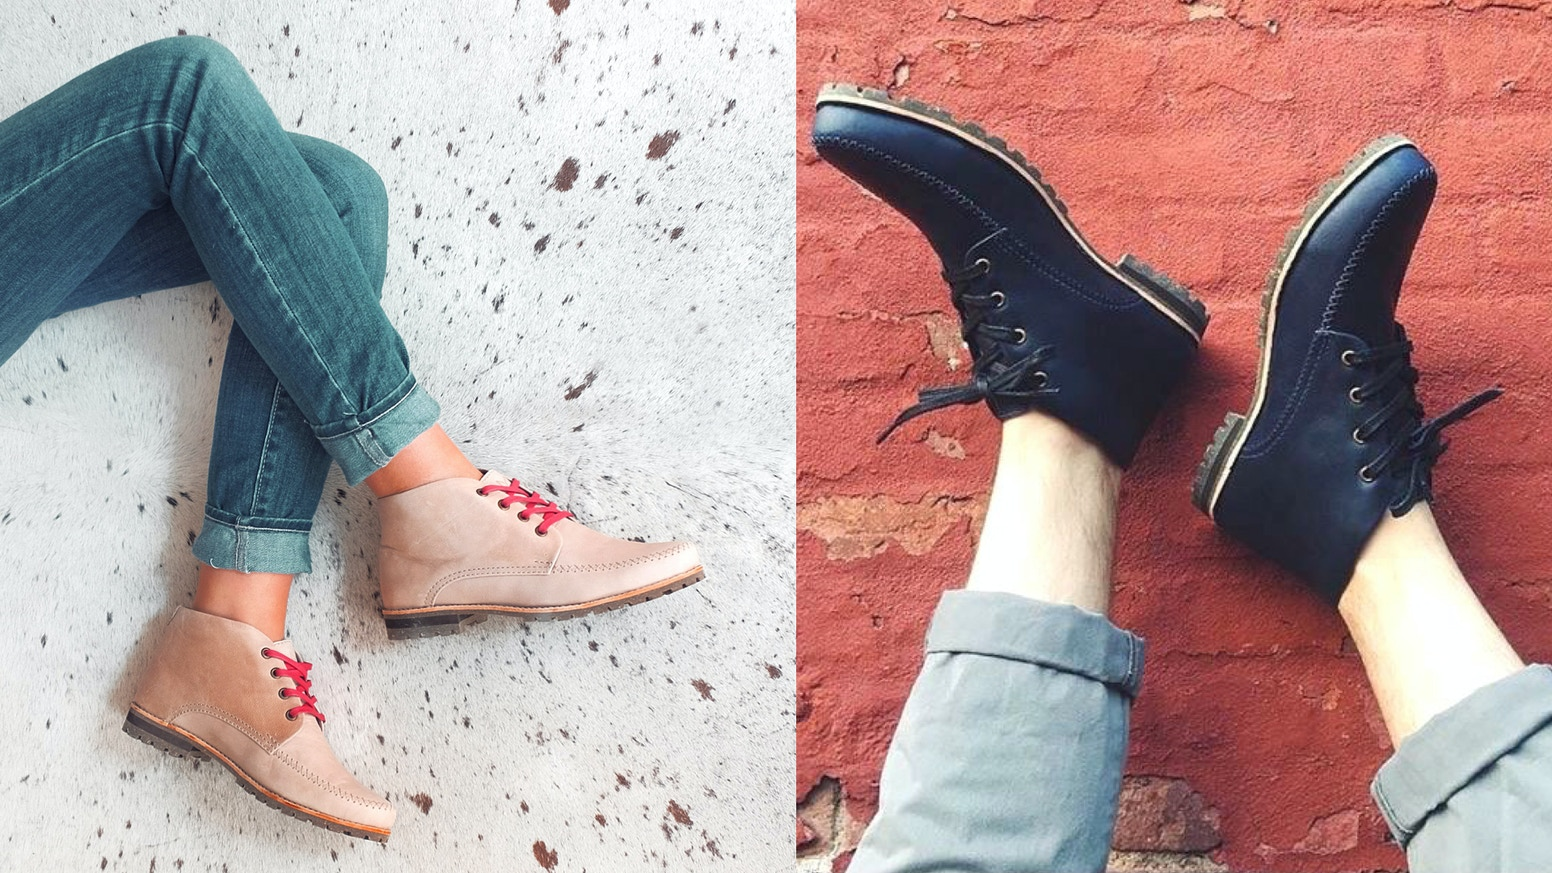 Handmade Shoes For Men And Women- The Successful Luxury Colour Revolution On Kickstarter